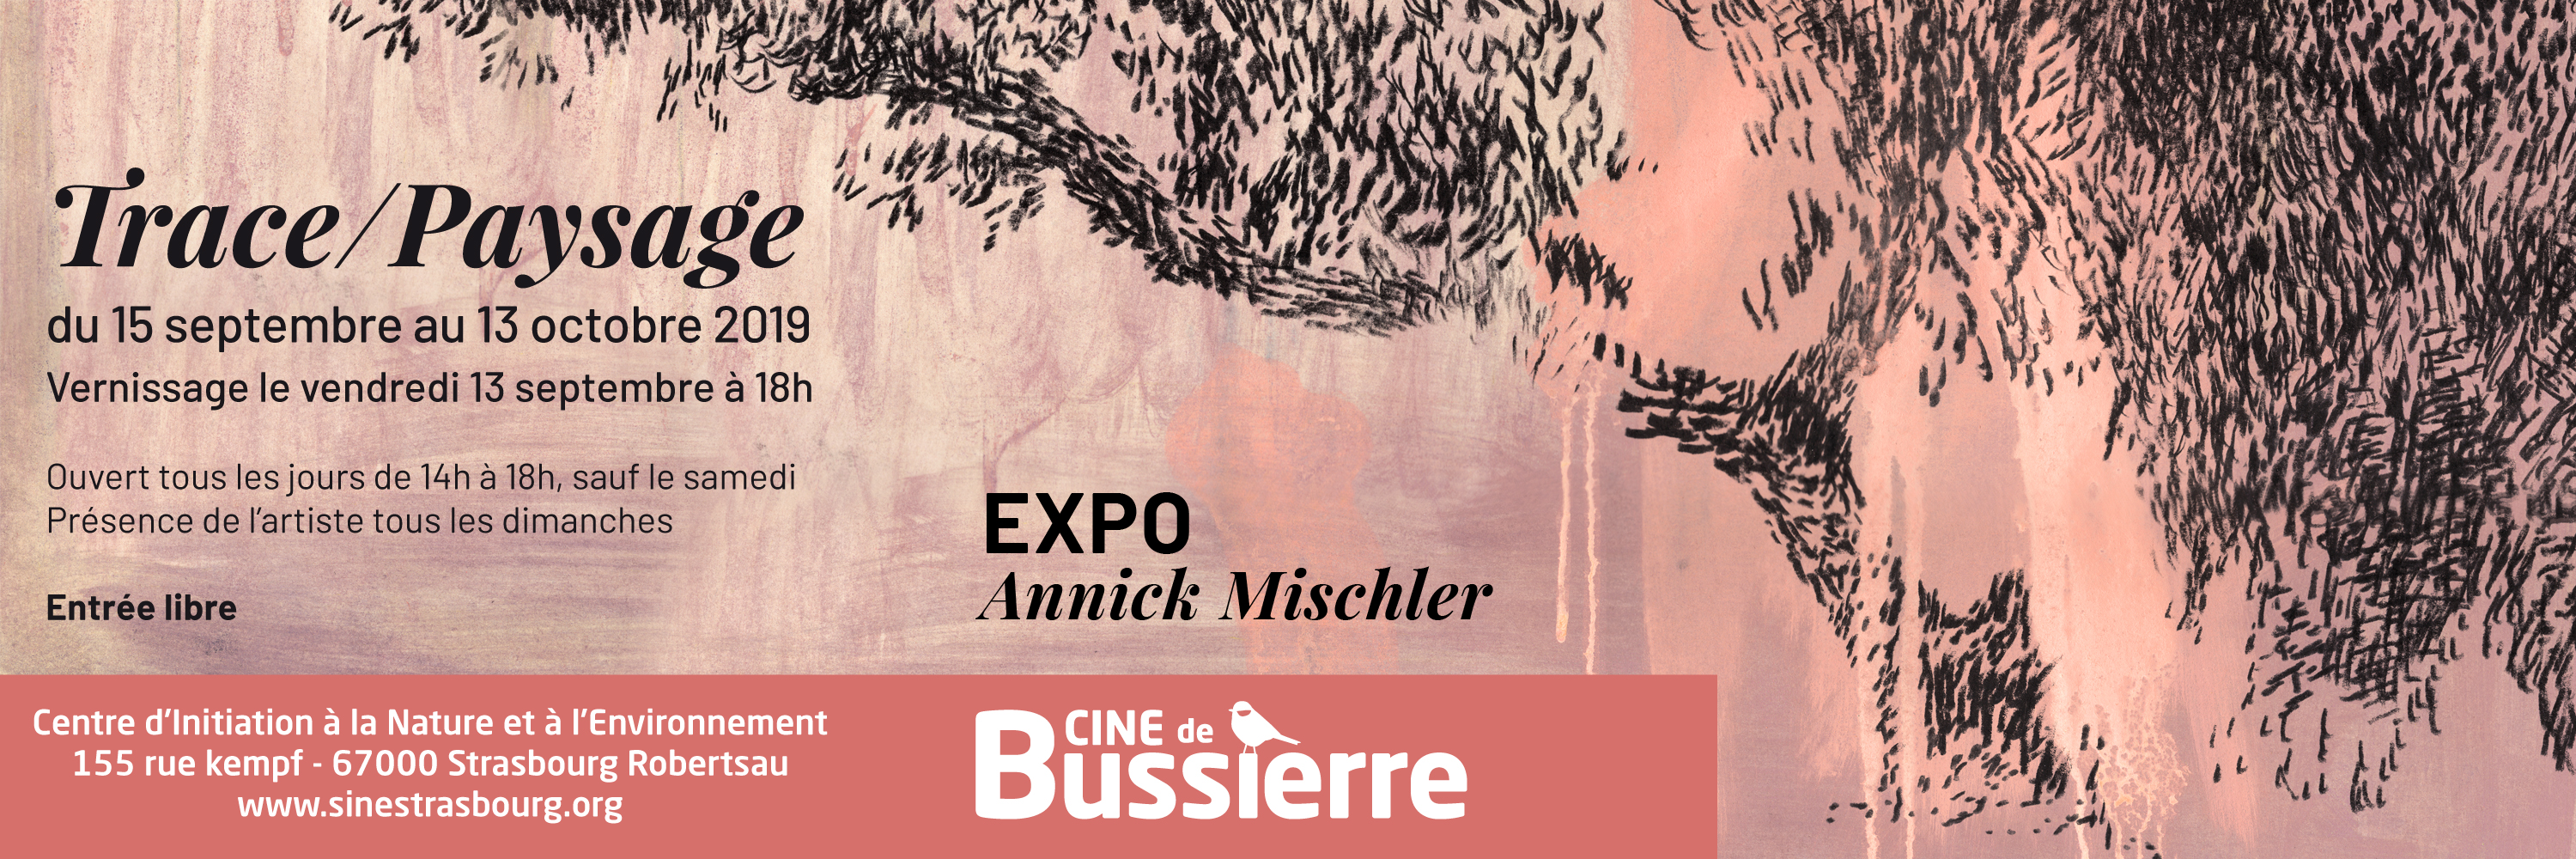 ExpoCineBussierre-1hd